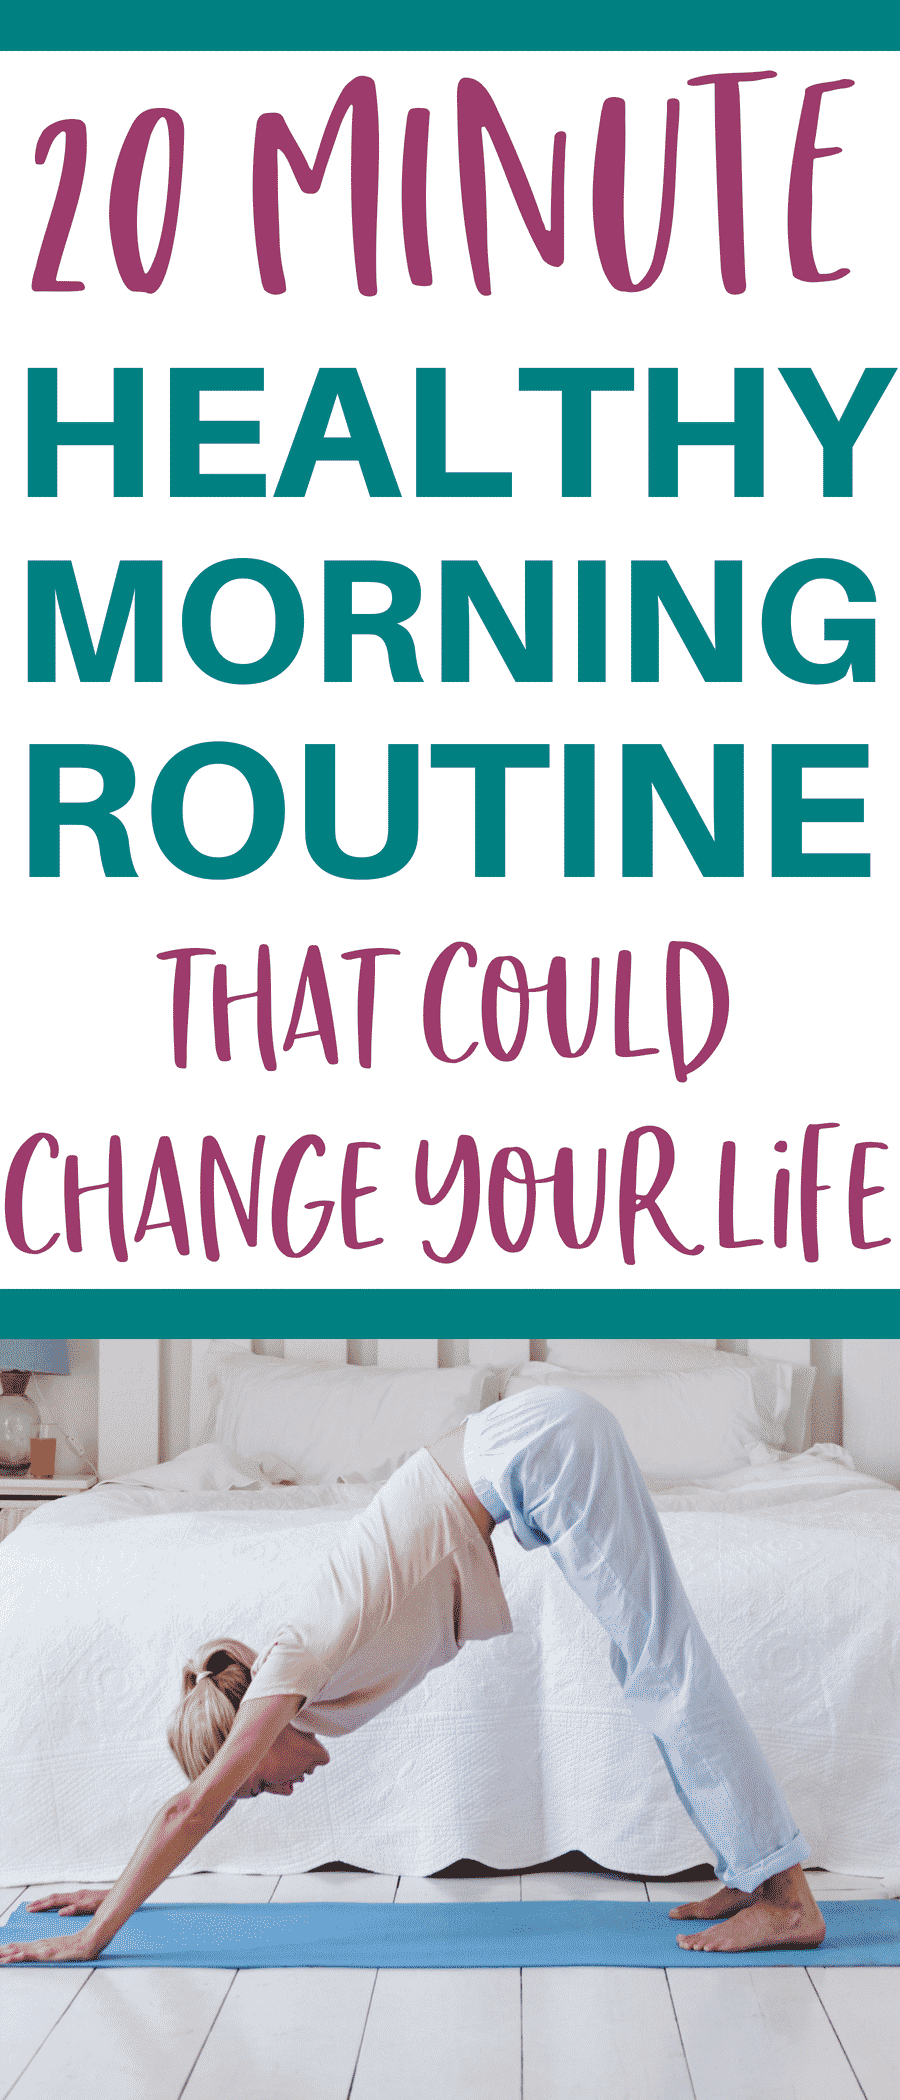 """This ayurveda morning routine is called """"Dinacharya"""" and it could change your life - it changed mine.... #dinacharya #ayurveda #ayurvedalifestyle #ayurvedamorningroutine #ayurvedicmorningroutine"""